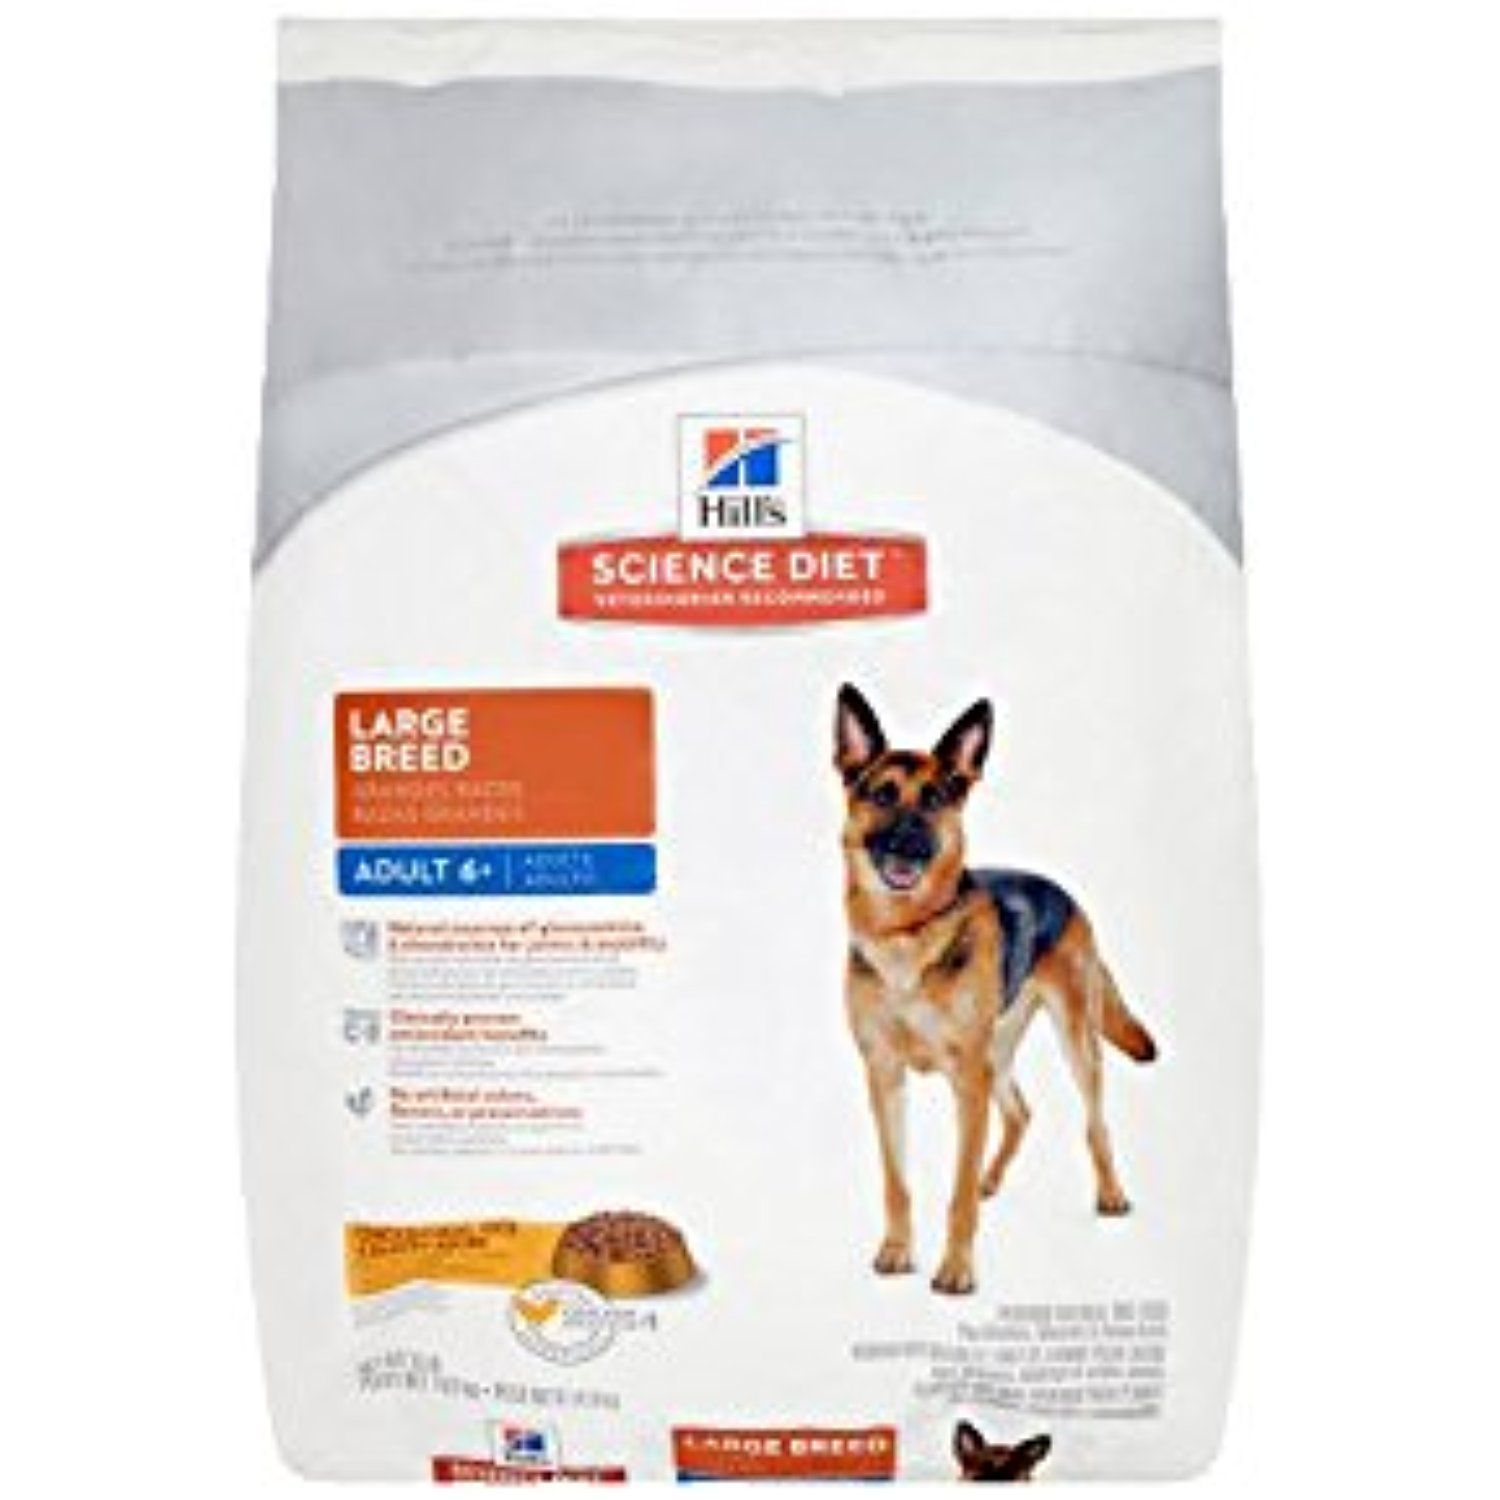 Hill S Science Diet Large Breed Chicken Meal Rice Dogs Senior Dog Food Recipes Dog Food Recipes Hills Science Diet